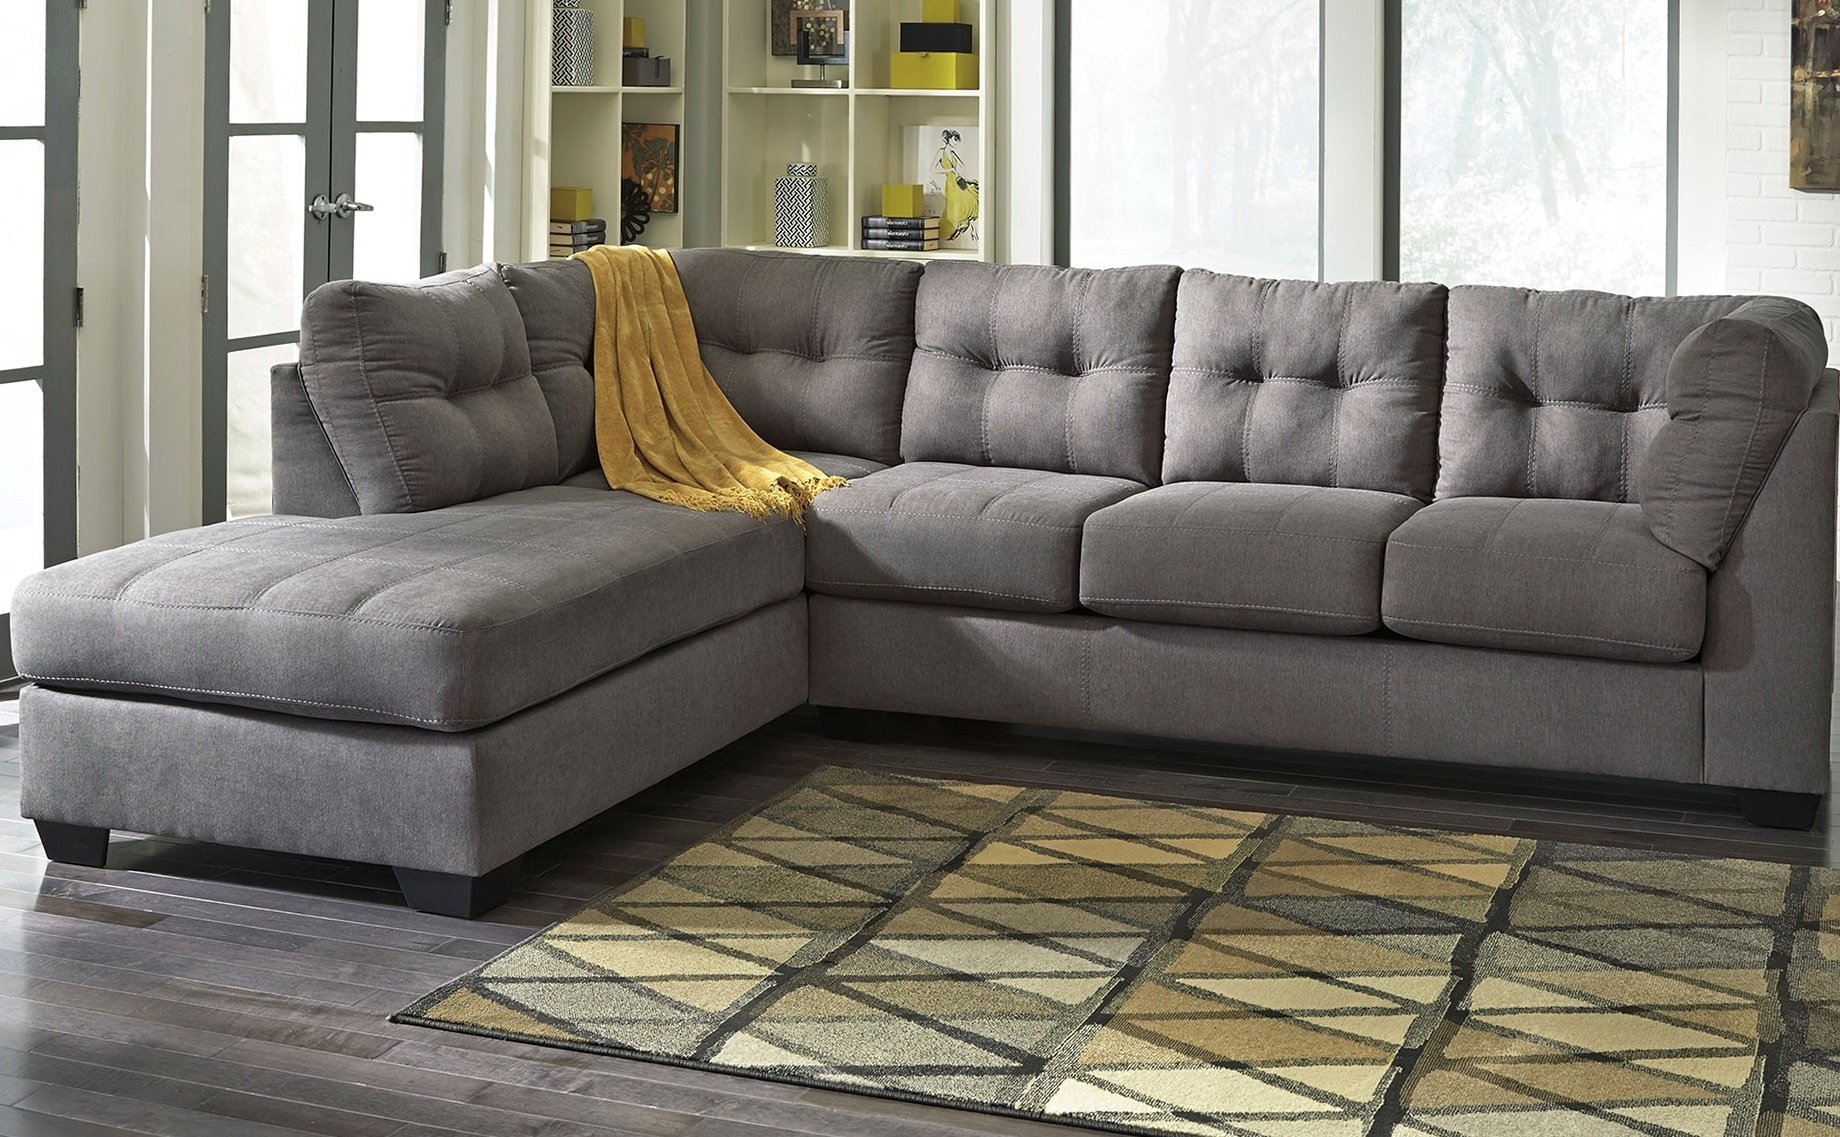 Widely Used Sectional Sofas With Chaise Lounge Pertaining To Sofa ~ Awesome Grey Sectional Sofa Perfect Grey Sectional Sofa (View 12 of 15)